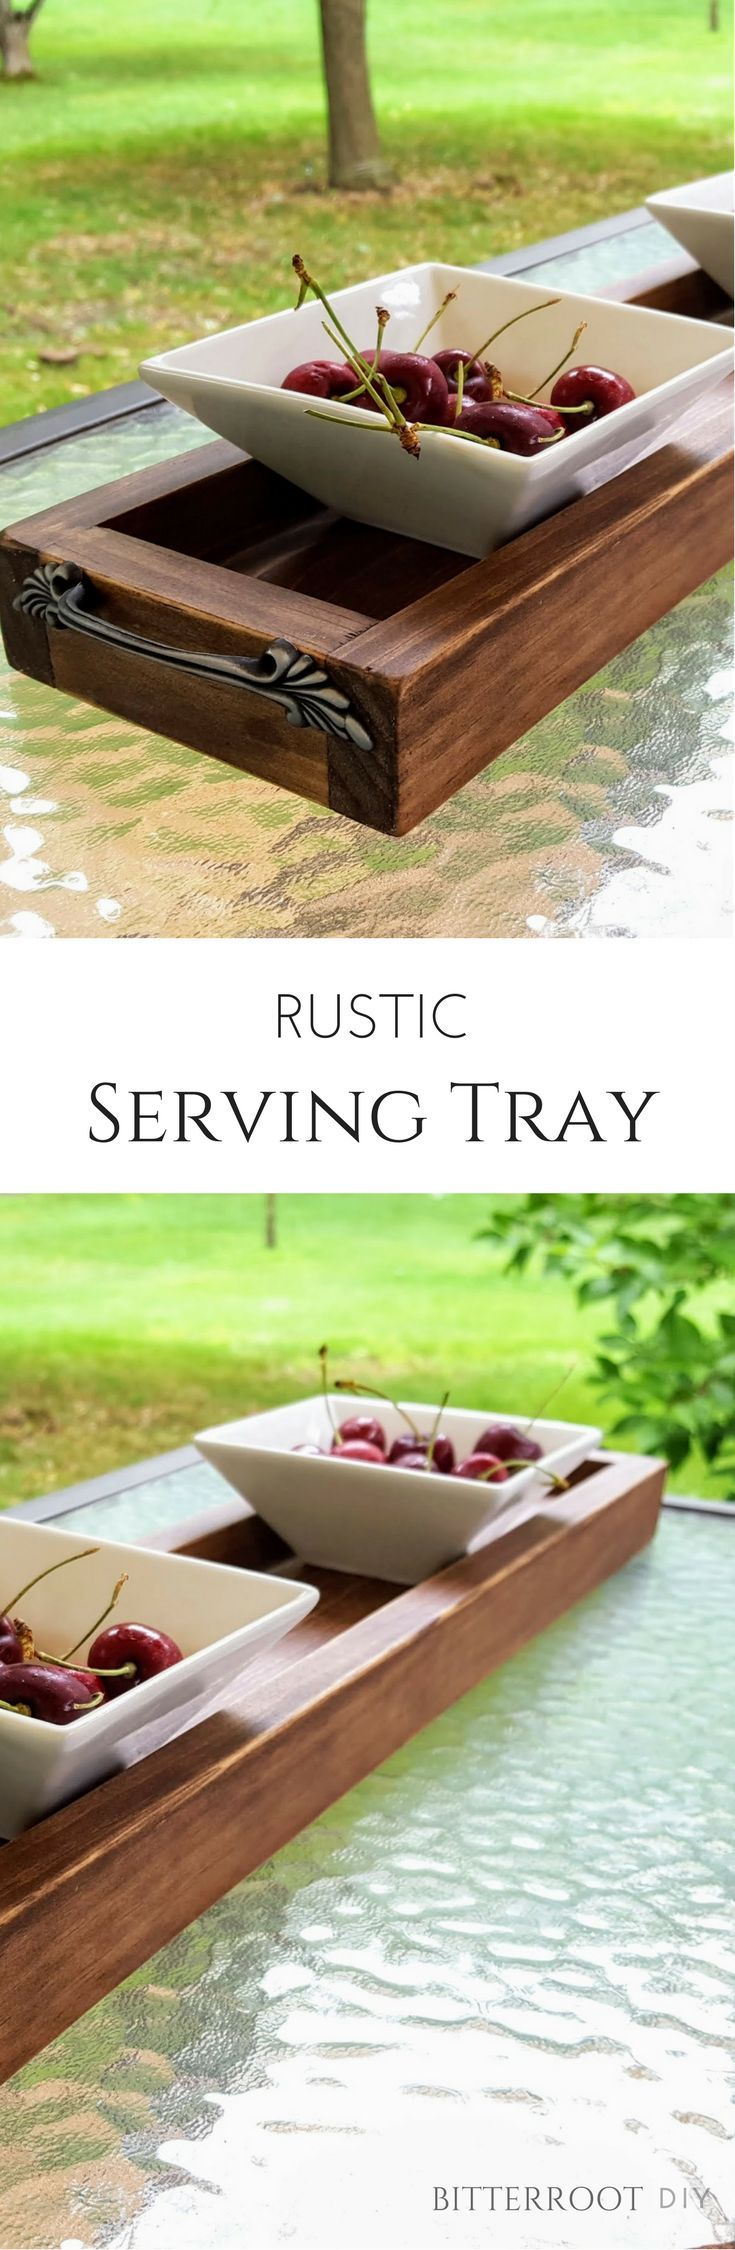 Best 25+ Rustic serving trays ideas on Pinterest | Serving trays ...